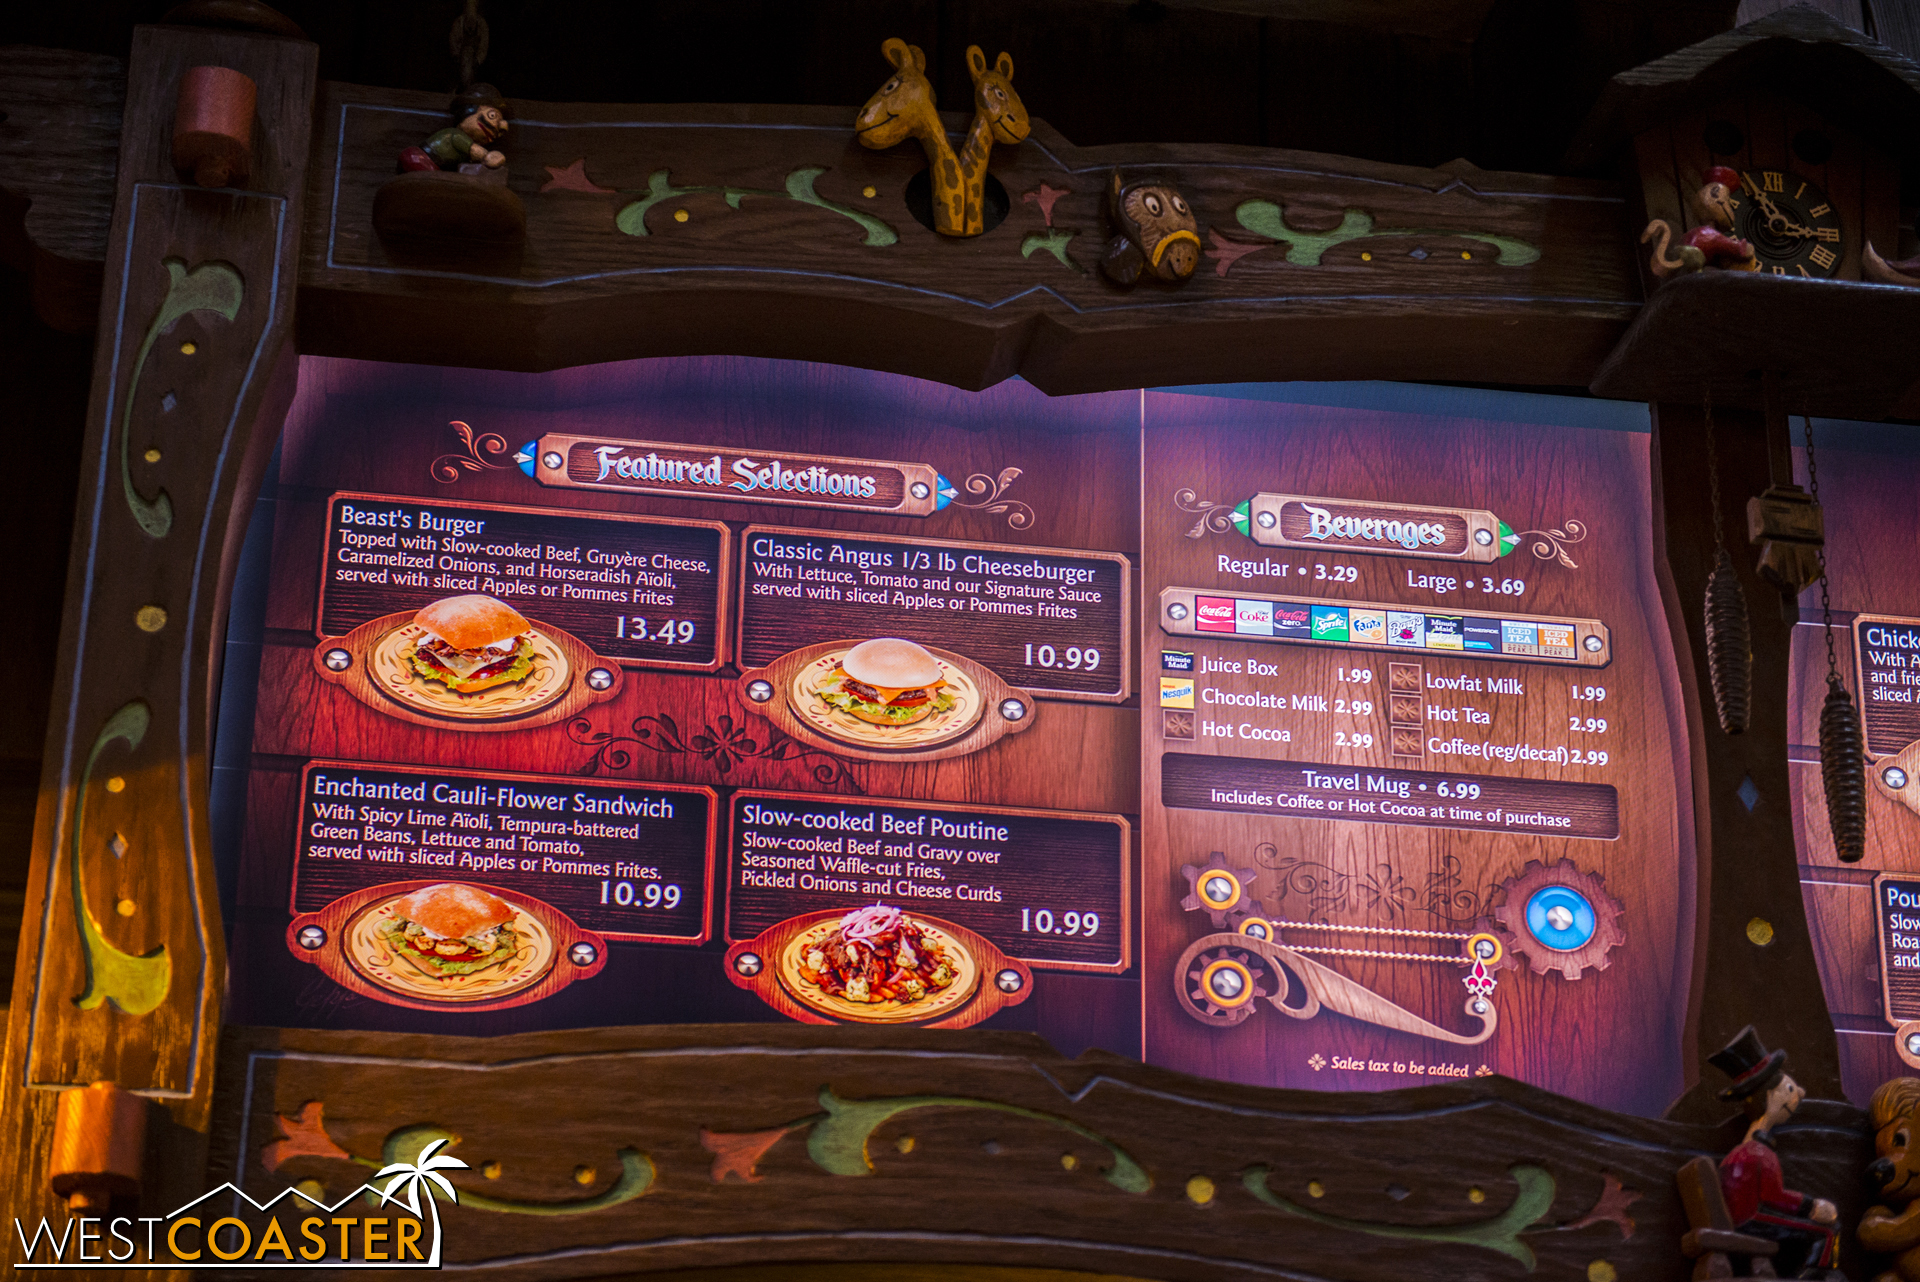 Lets take a look at the food offerings! Here's half of the adult selections.